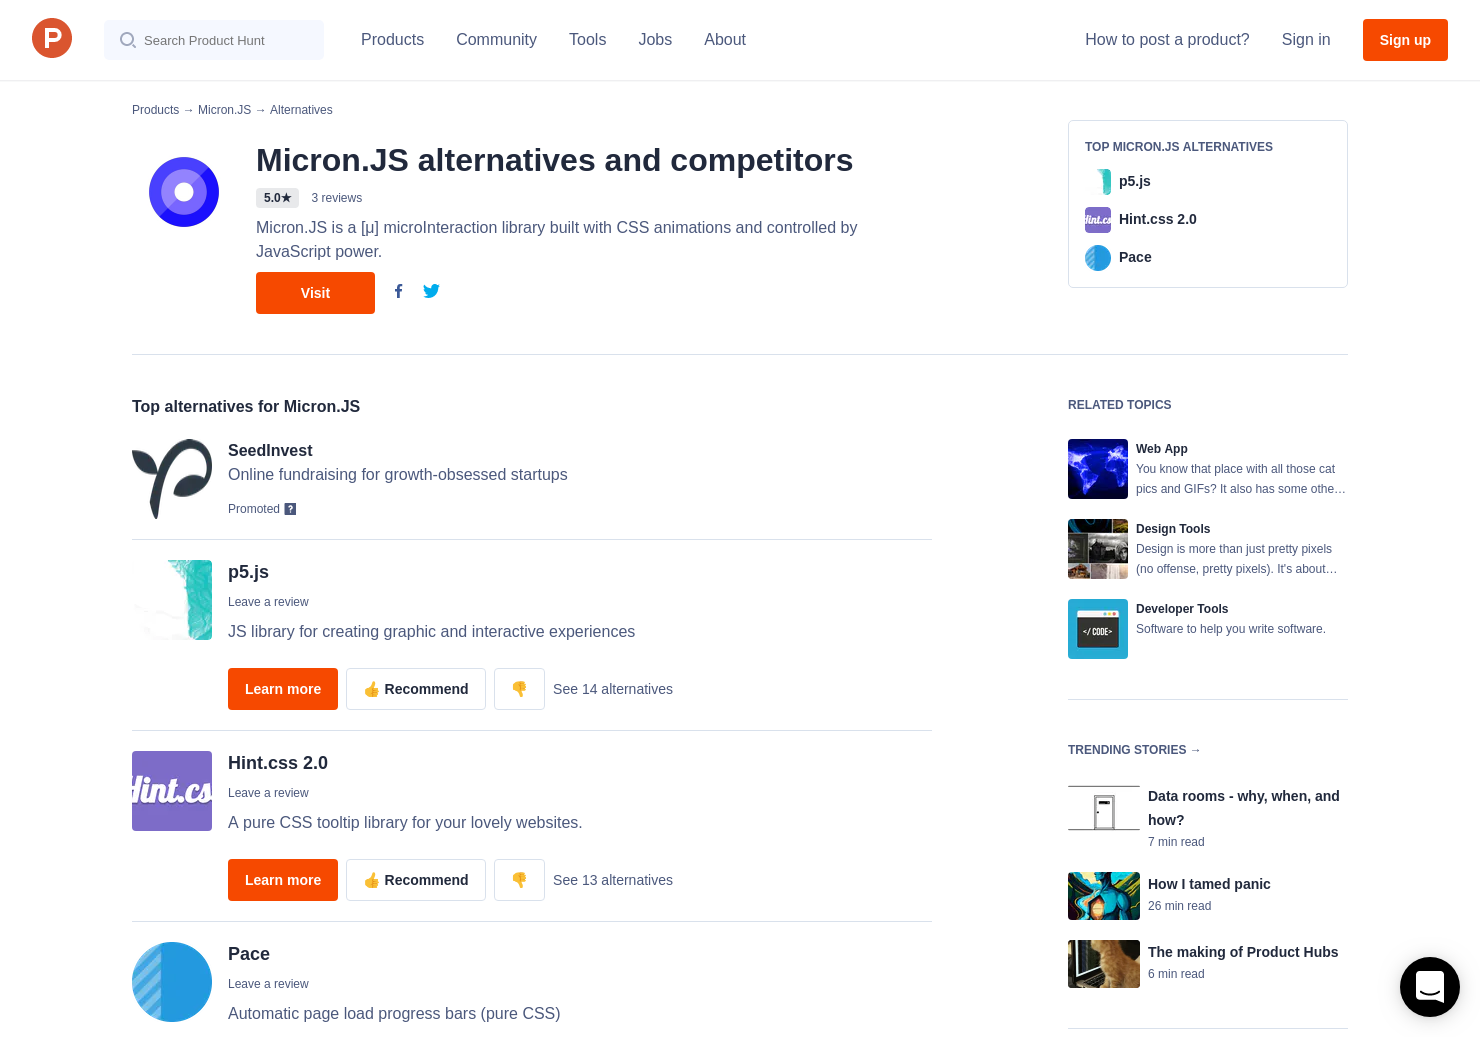 6 Alternatives to Micron JS | Product Hunt